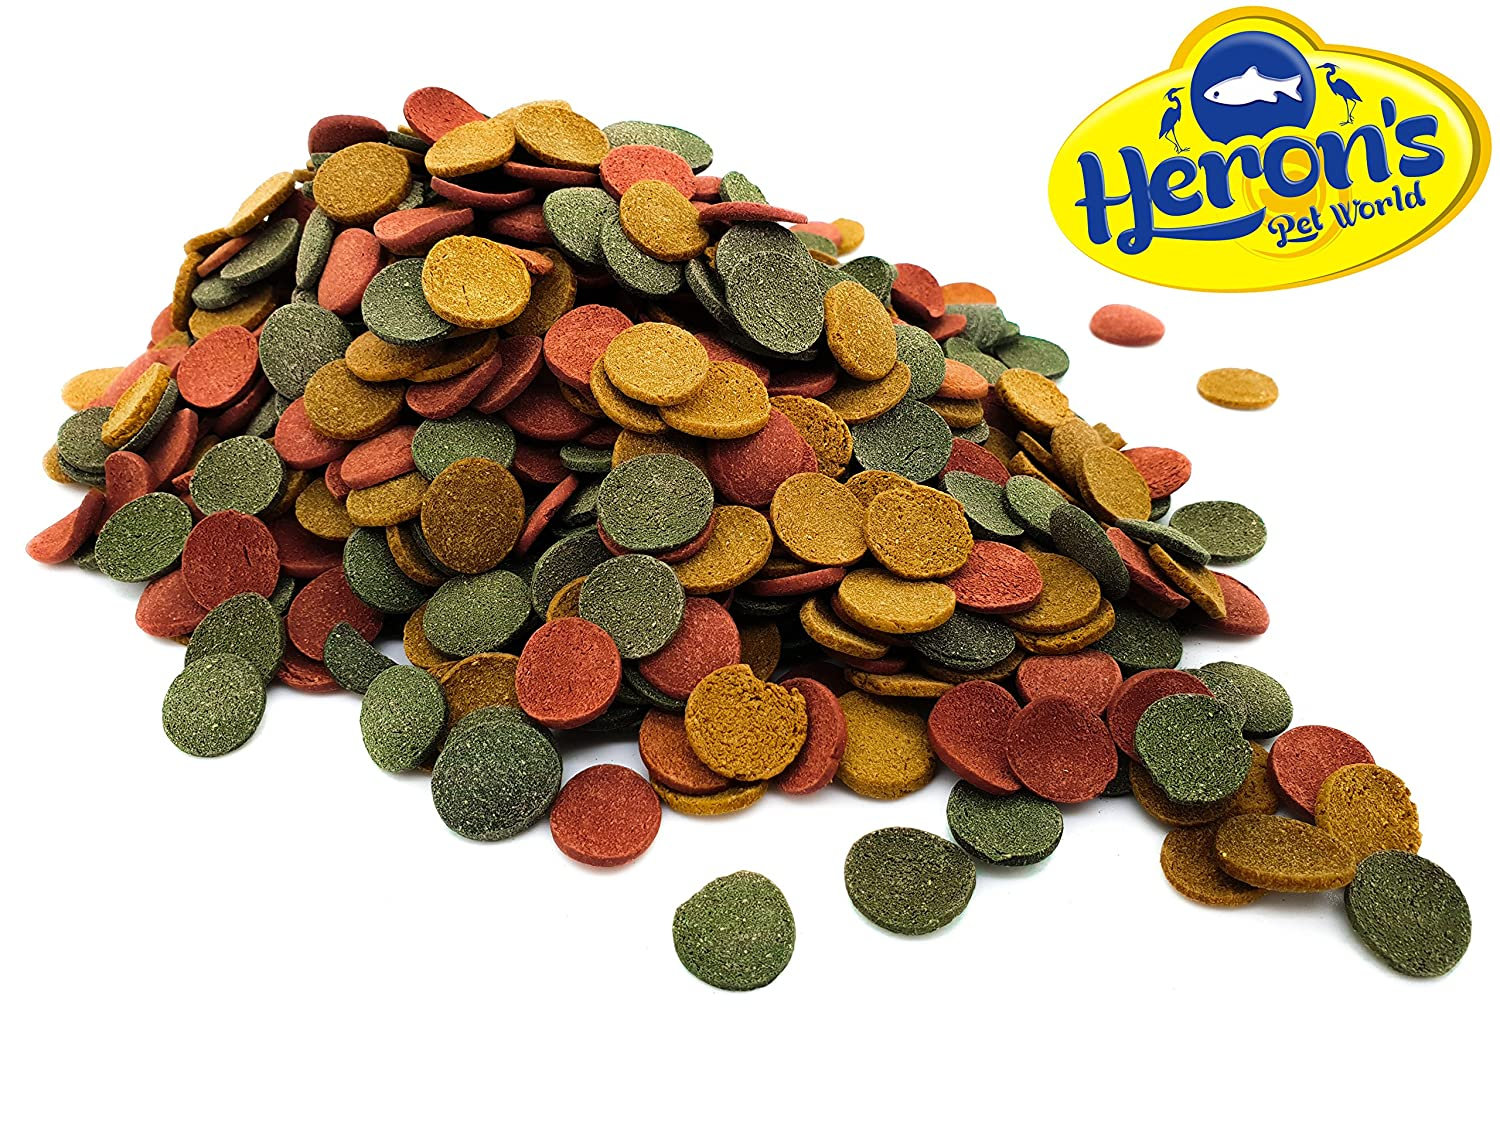 HERONS Algae Wafer Mix 13-15% Spirulina FOR ALL BOTTOM FEEDING TROPICAL FISH Pleco Wafers Loach Cory Snail Shrimp Heron's Pet World Ltd